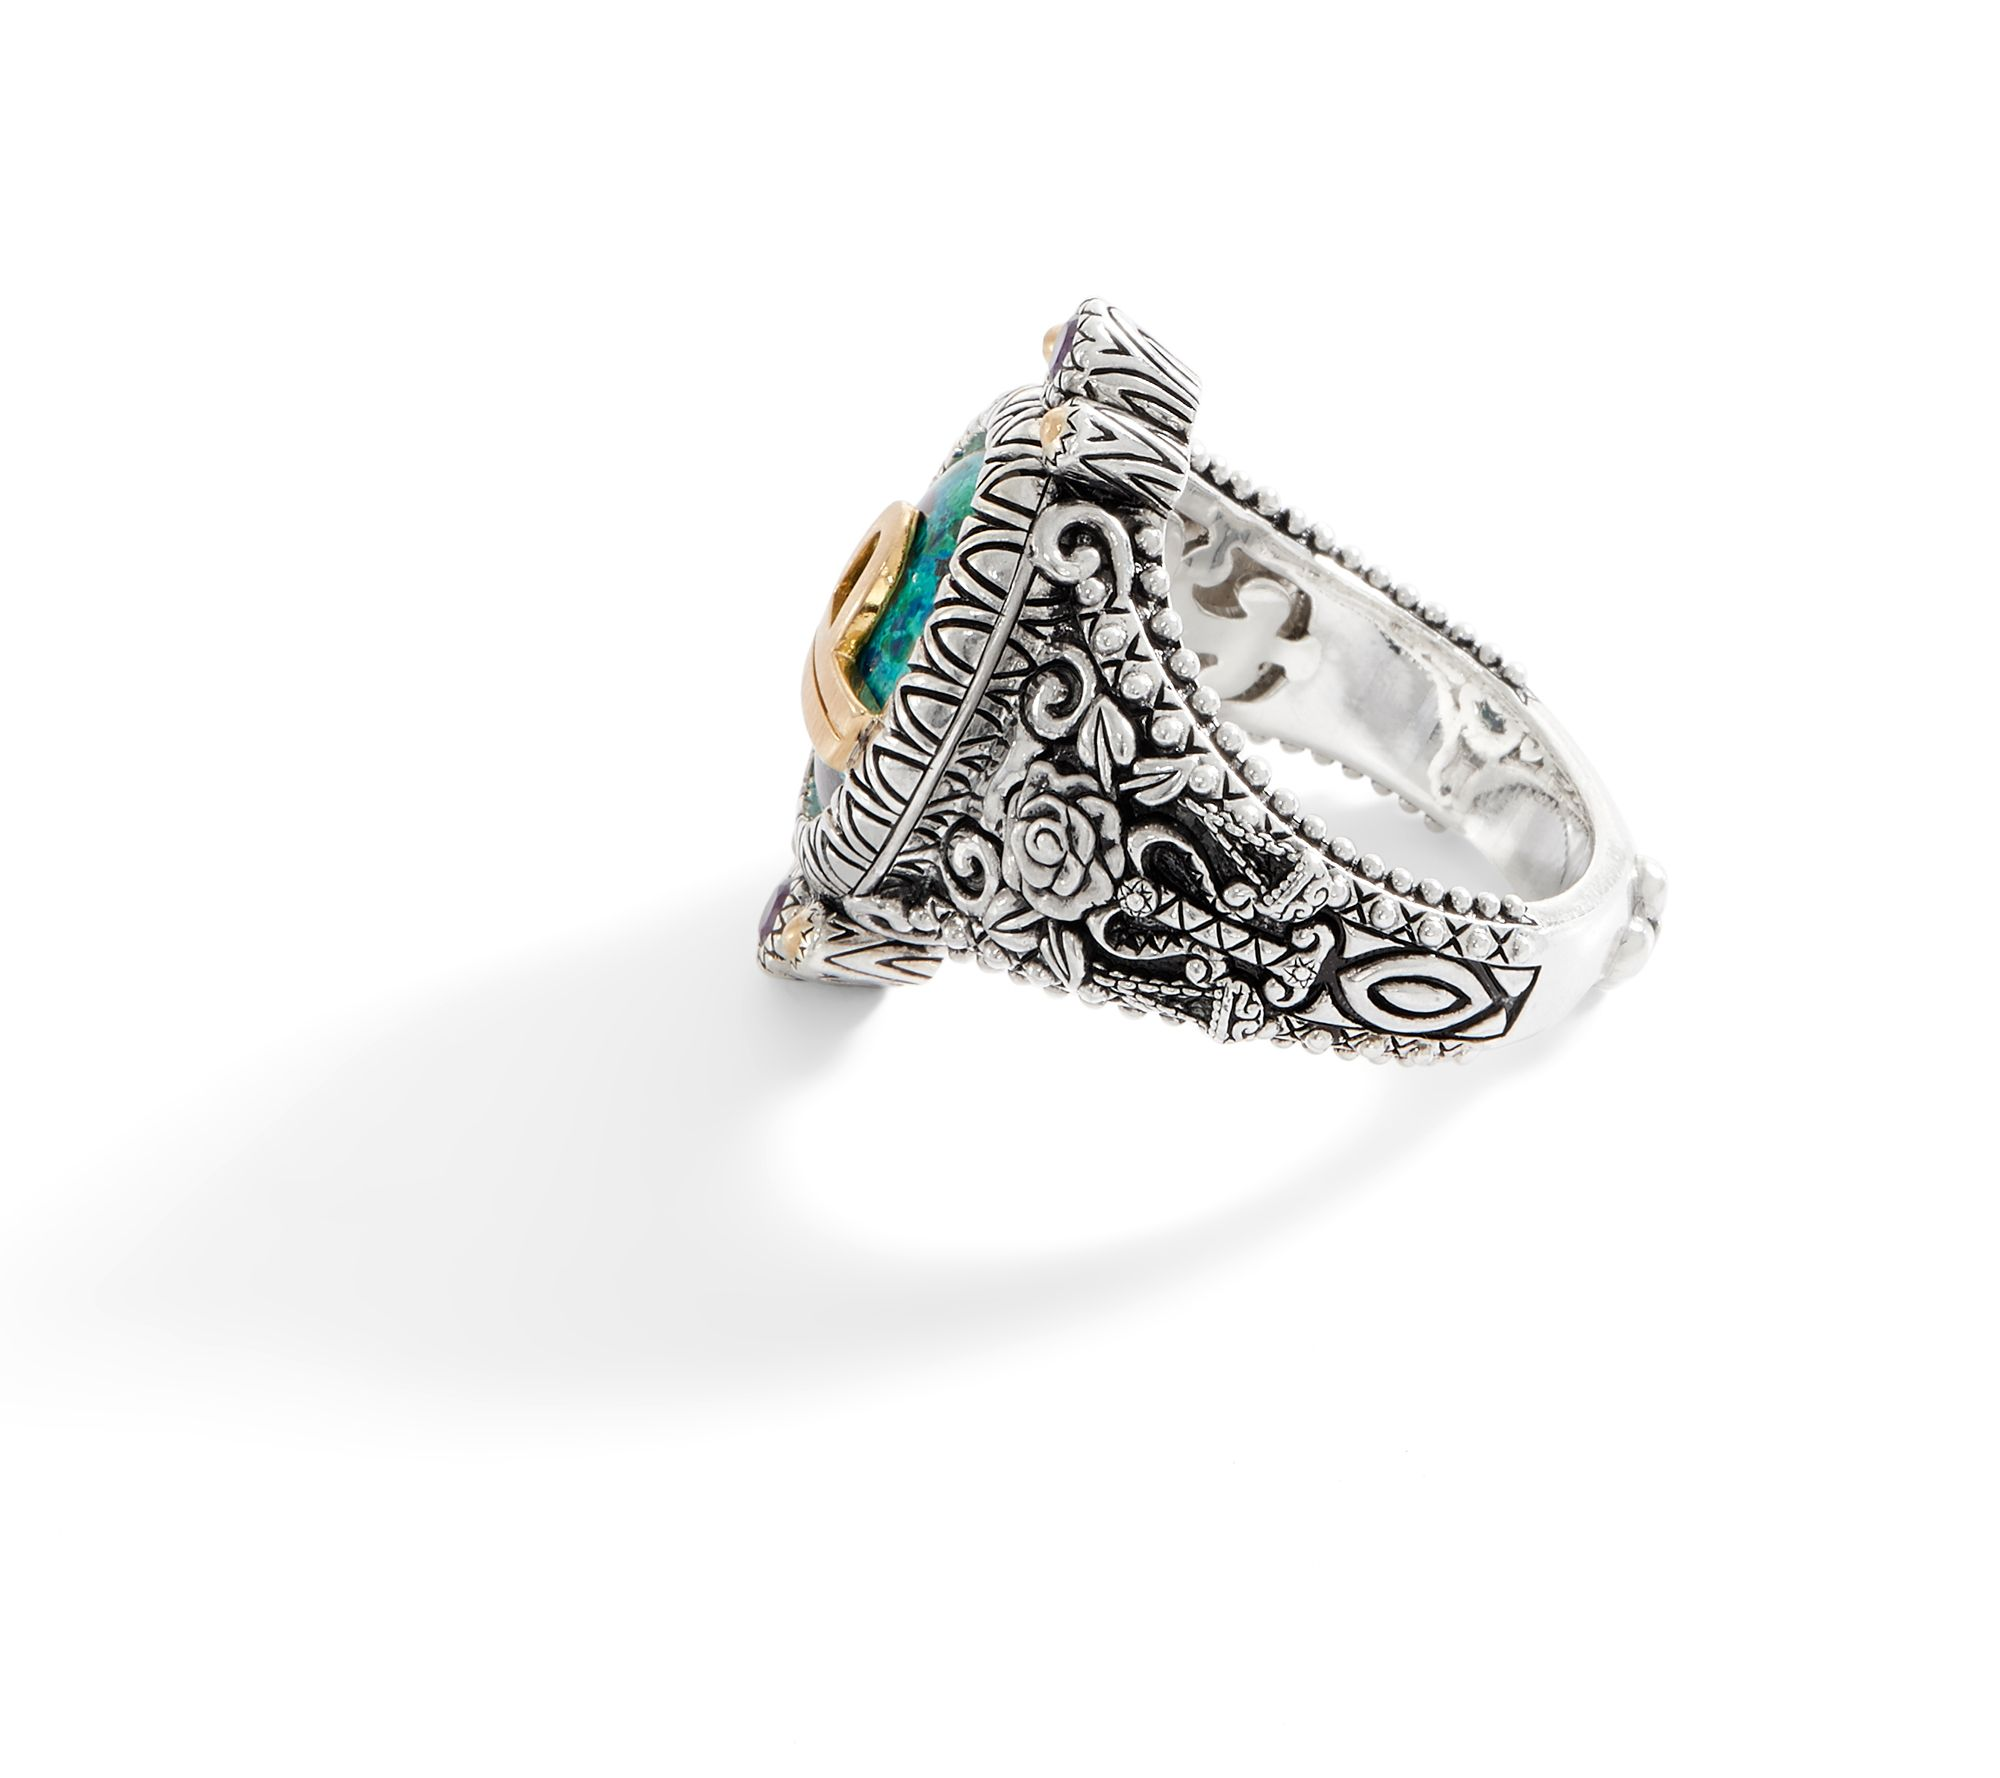 ced21f059 Barbara Bixby Sterling Silver & 18K Gold Horoscope Ring - Page 1 — QVC.com